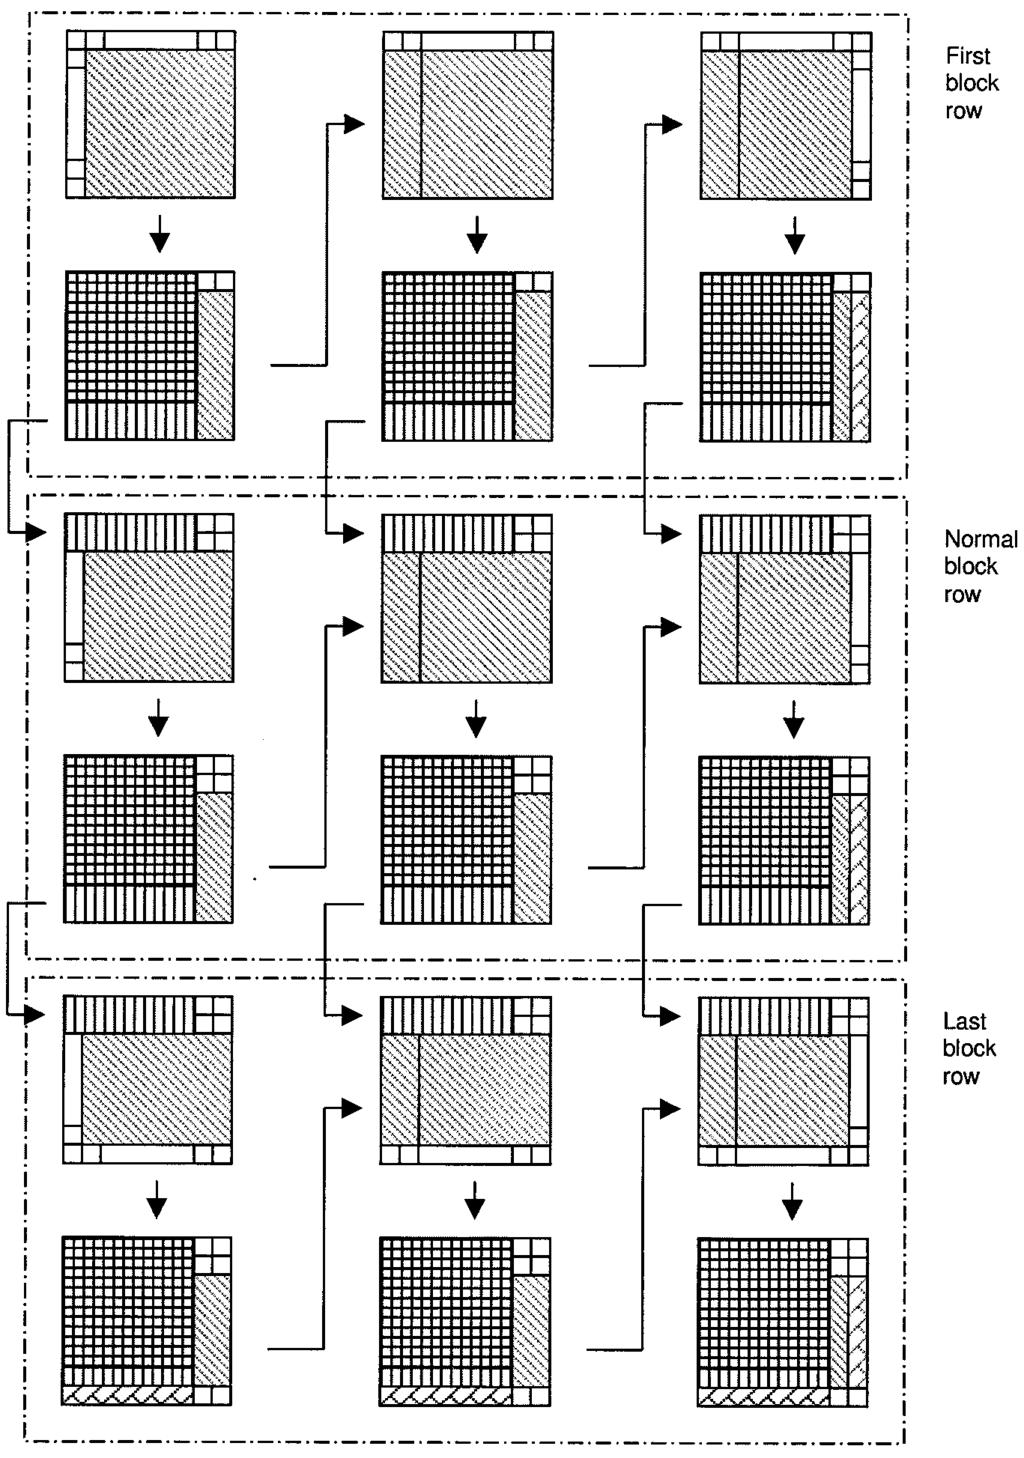 IEEE TRANSACTIONS ON CIRCUITS AND SYSTEMS FOR VIDEO TECHNOLOGY, VOL. 11, NO. 5, MAY 2001 645 (a) (b) (c) Fig. 4. Implementation details of forward DSWT. (a) First block column.